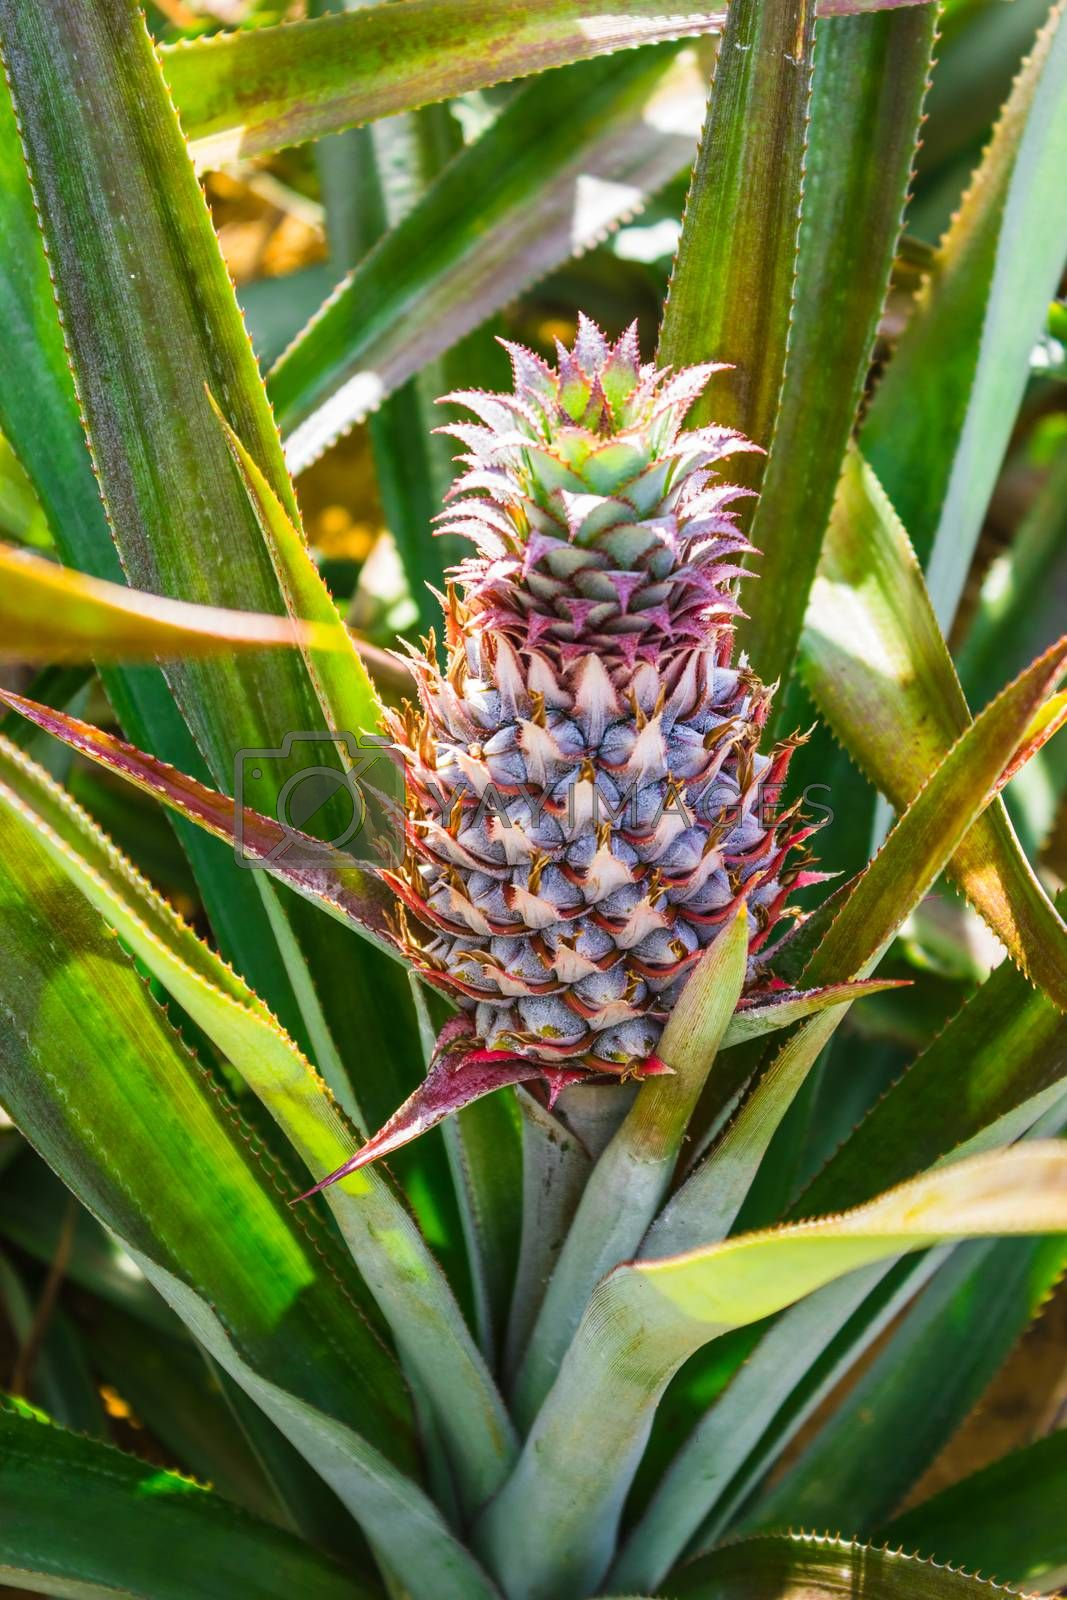 Royalty free image of Fresh pineaple on bush with leaves by oleg_zhukov